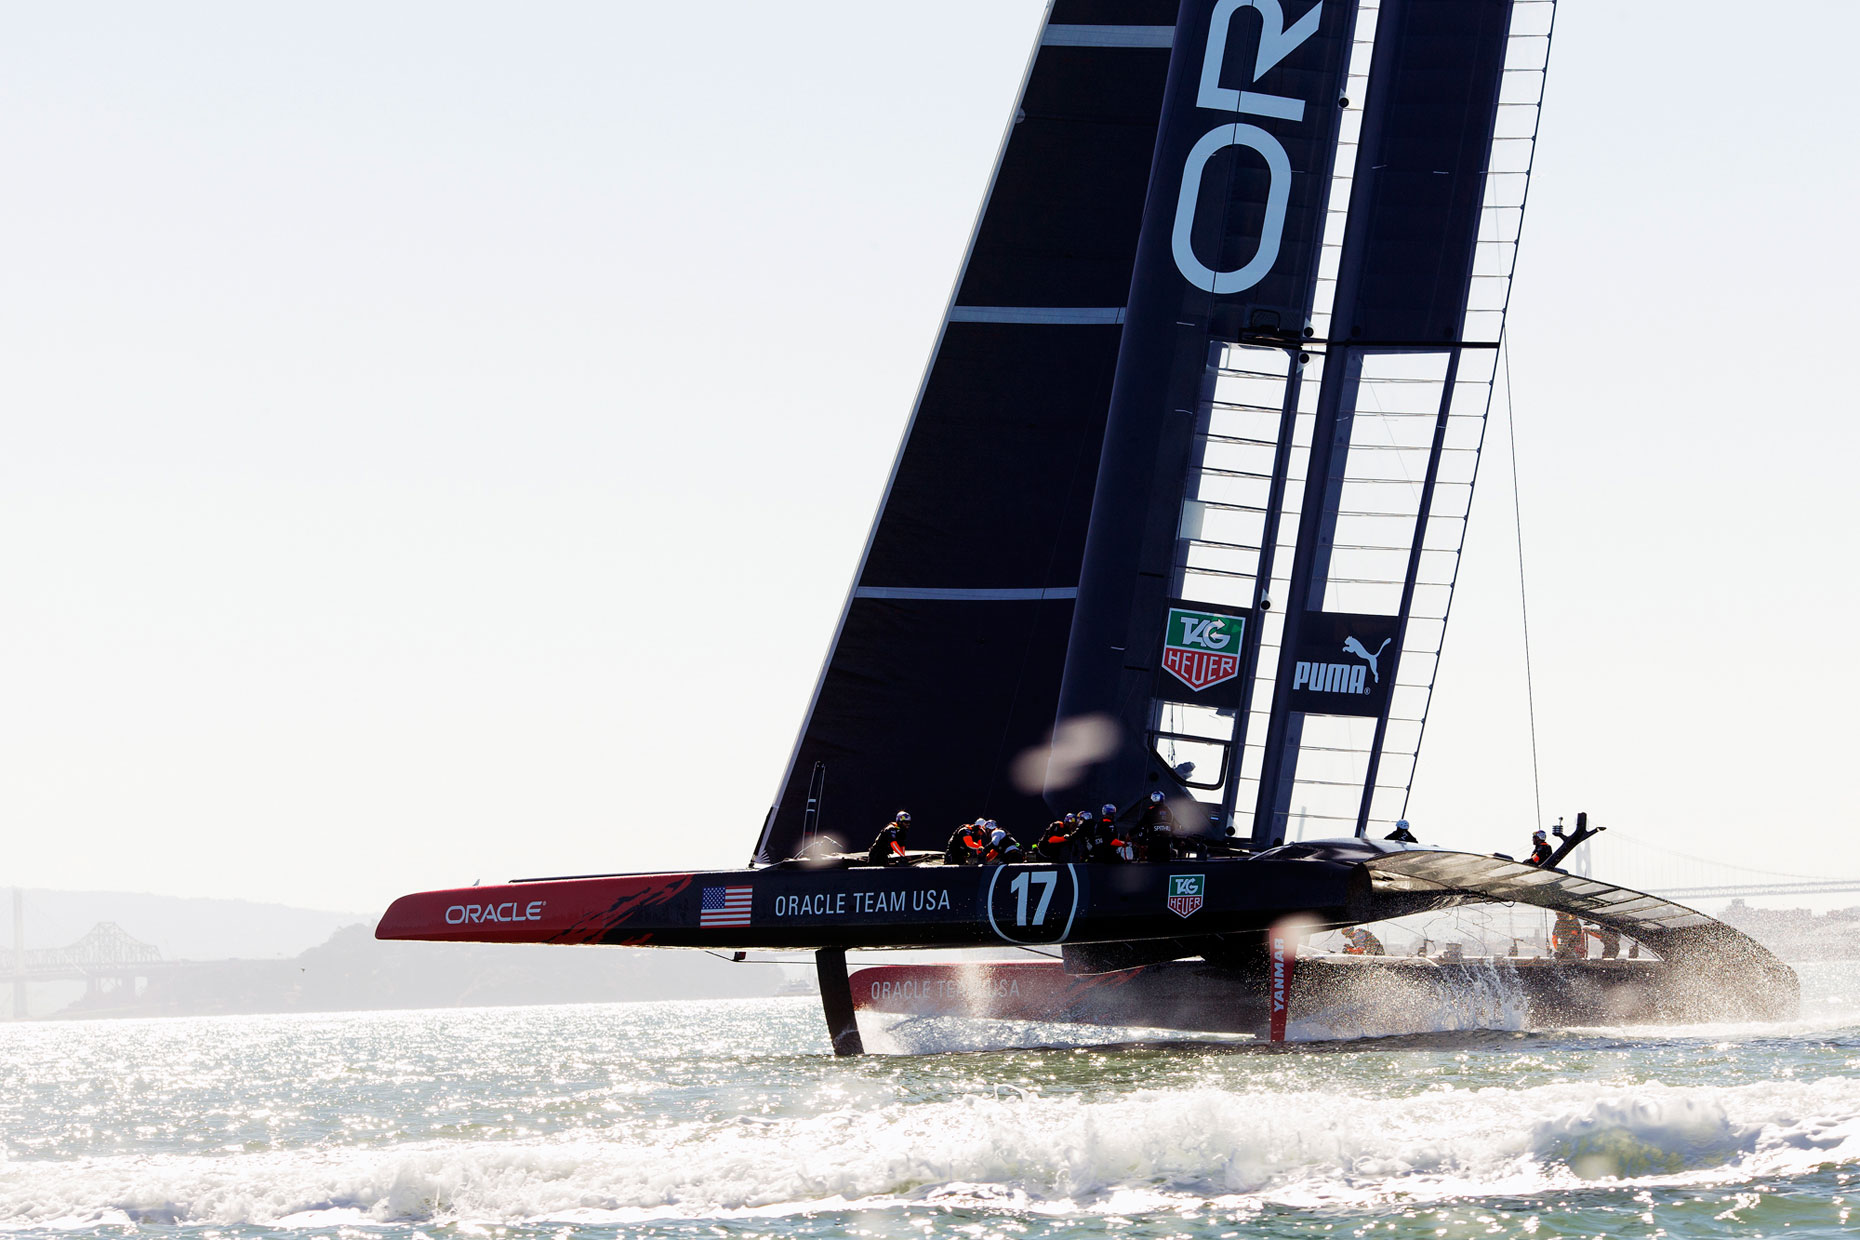 ORACLE RACING